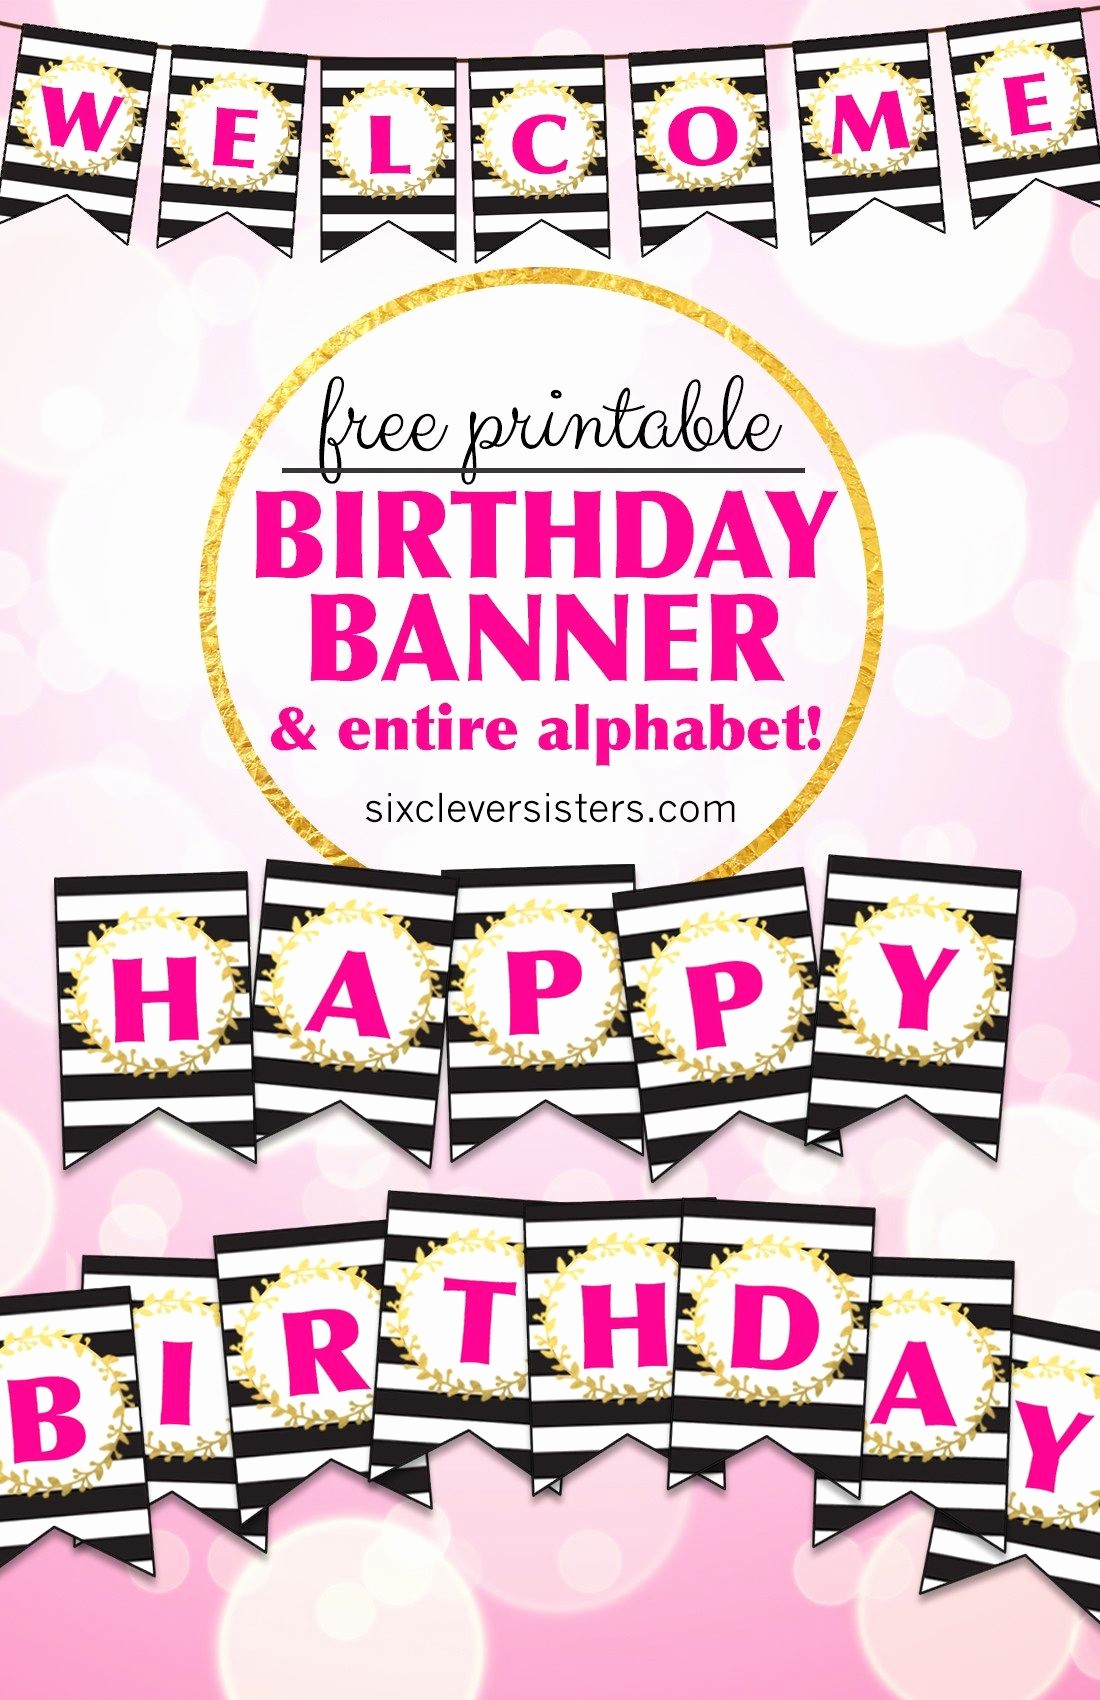 Happy Birthday Letters to Print Best Of Free Printable Happy Birthday Banner and Alphabet